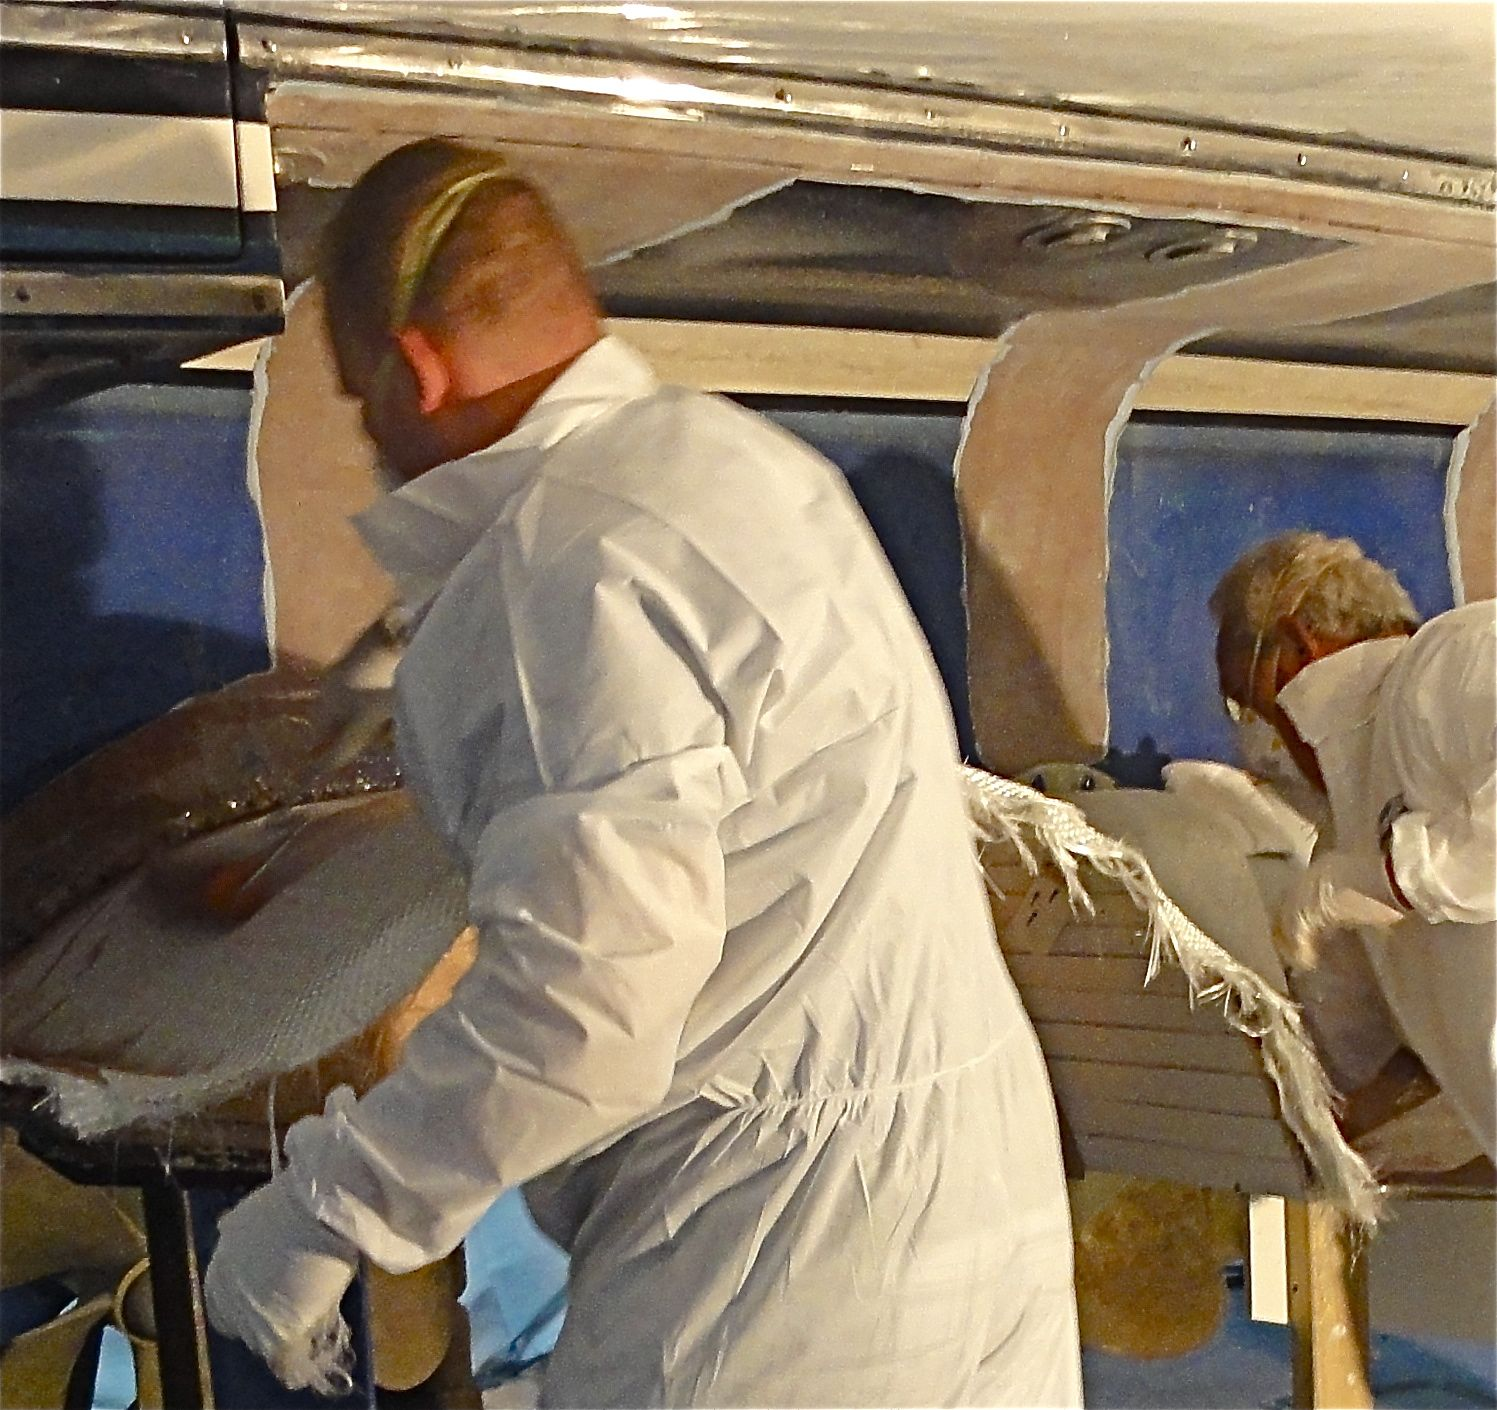 Applying resin to the fiberglass so that the hull extension we are manufacturing for this 70' Marlow is good and strong!